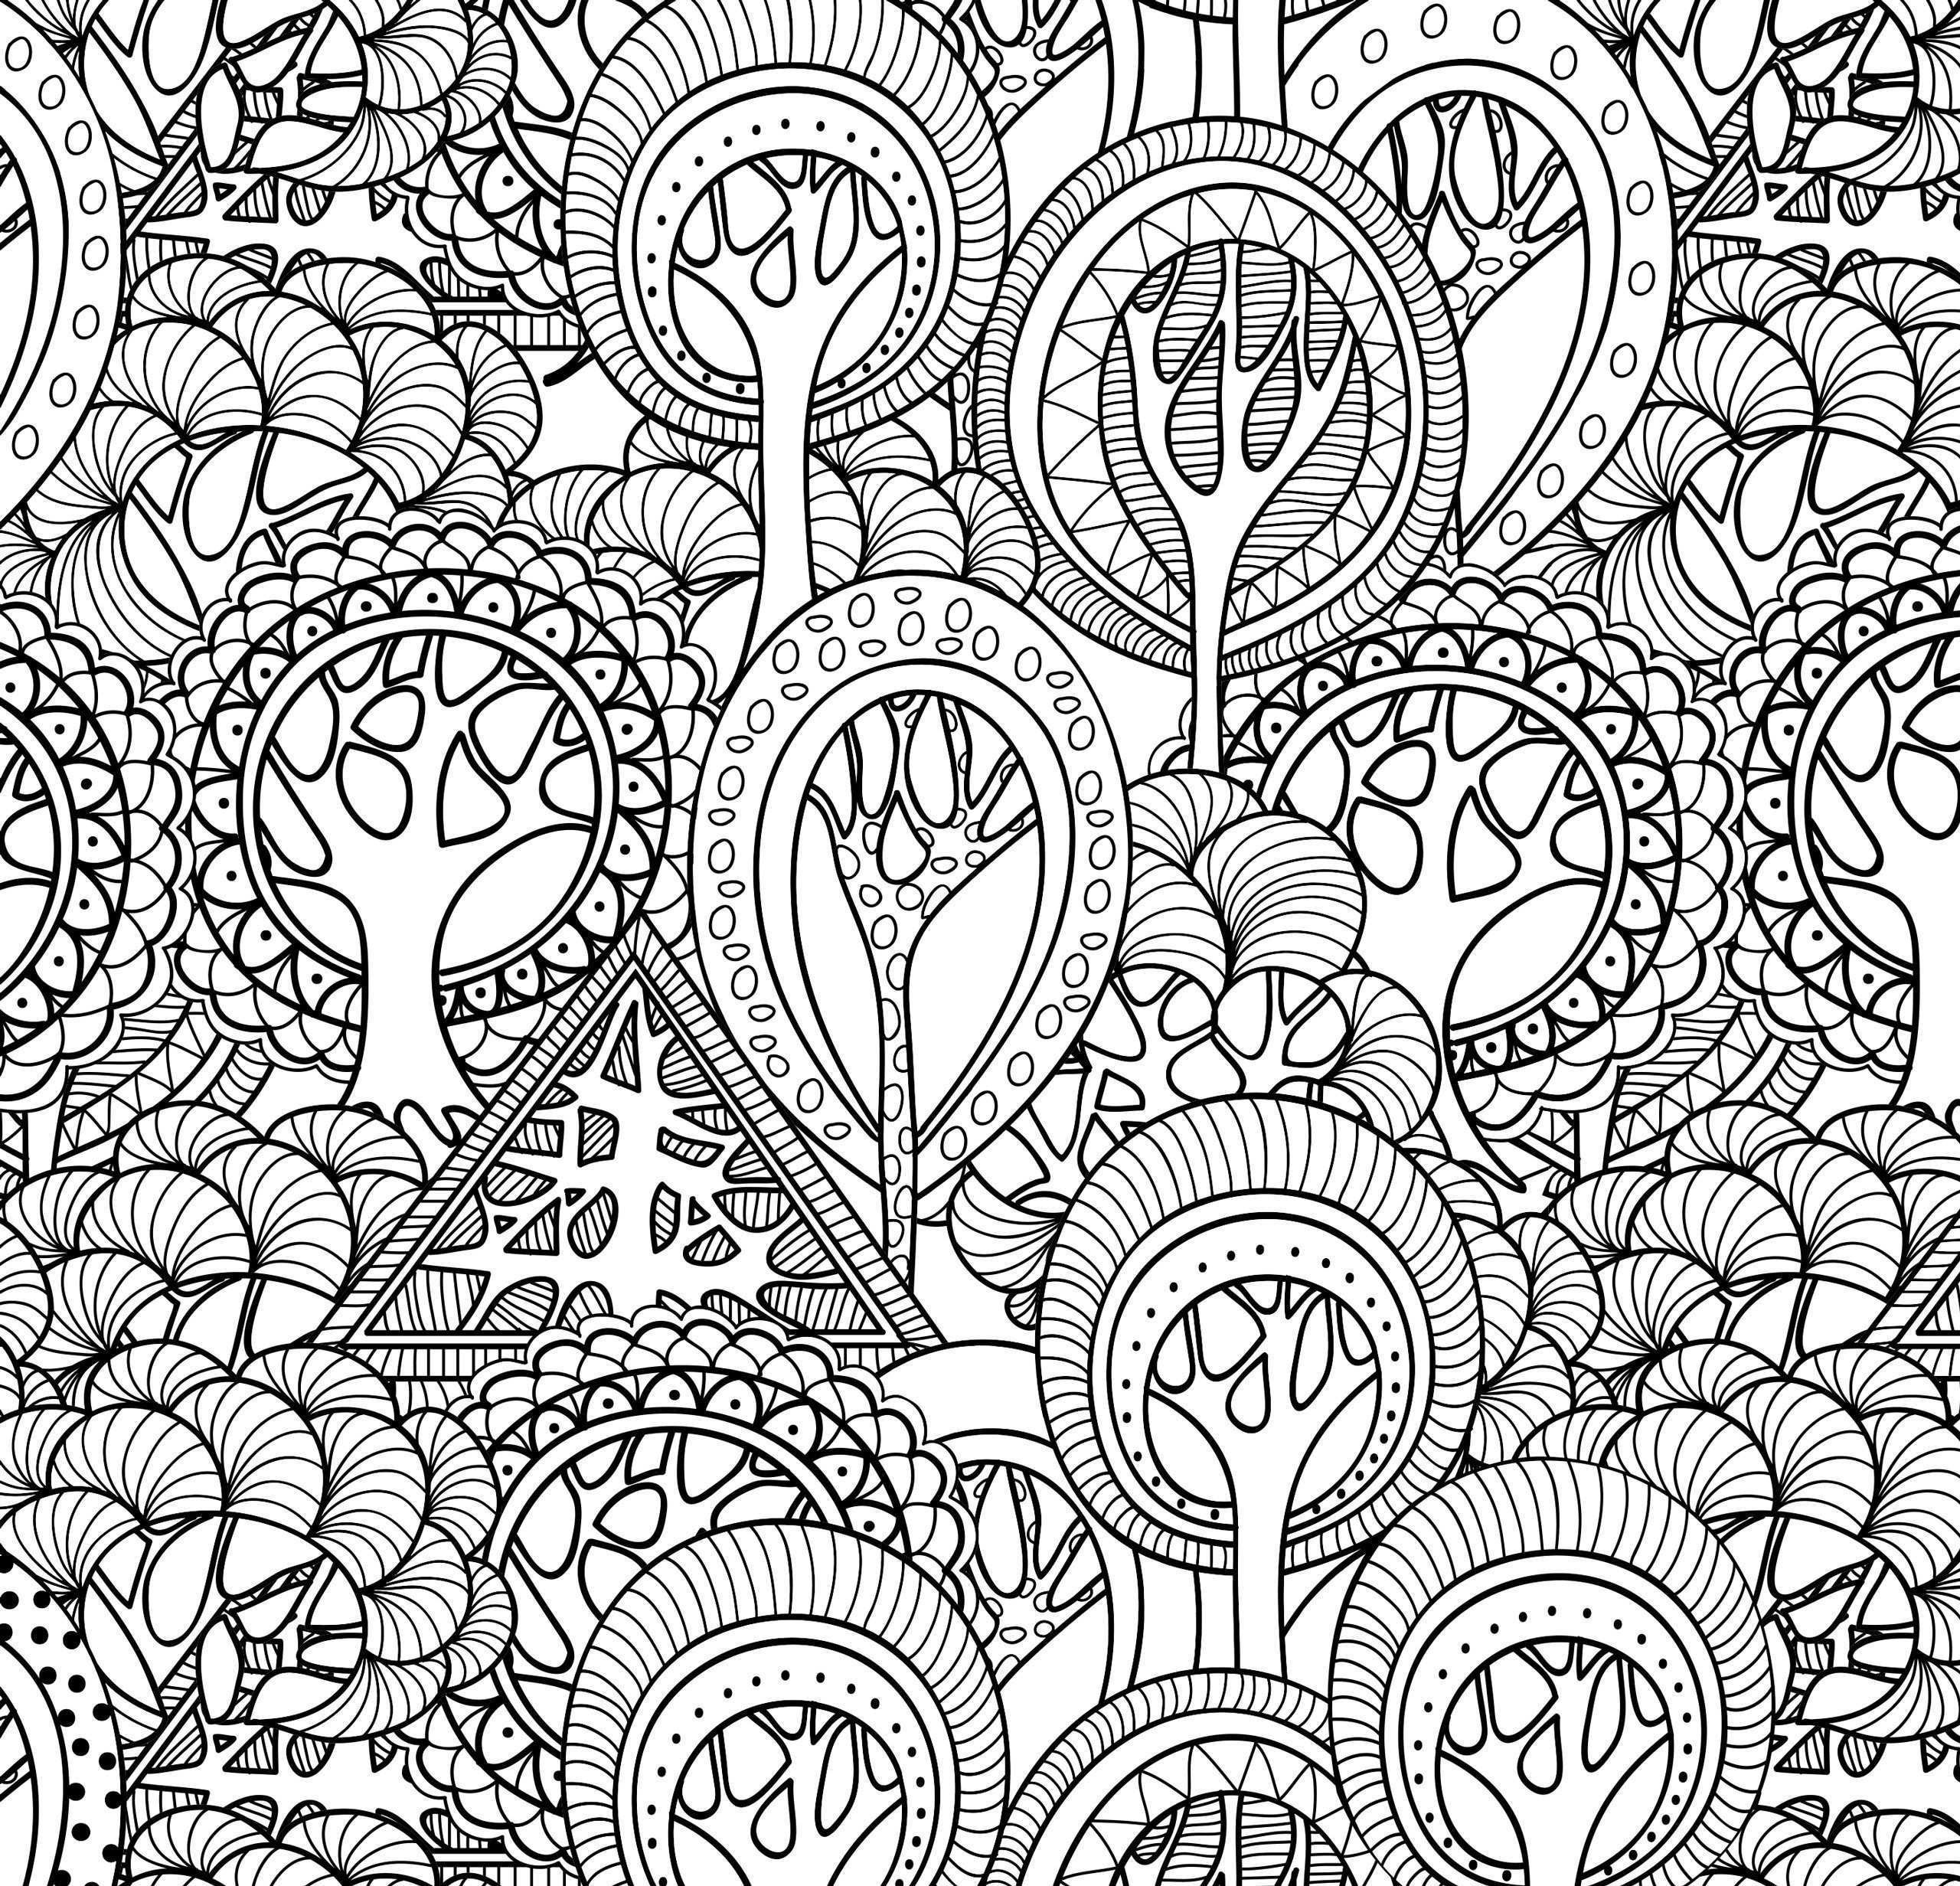 Free Complicated Coloring Pages Fall Coloring Pages Designs Coloring Books Bible Coloring Pages